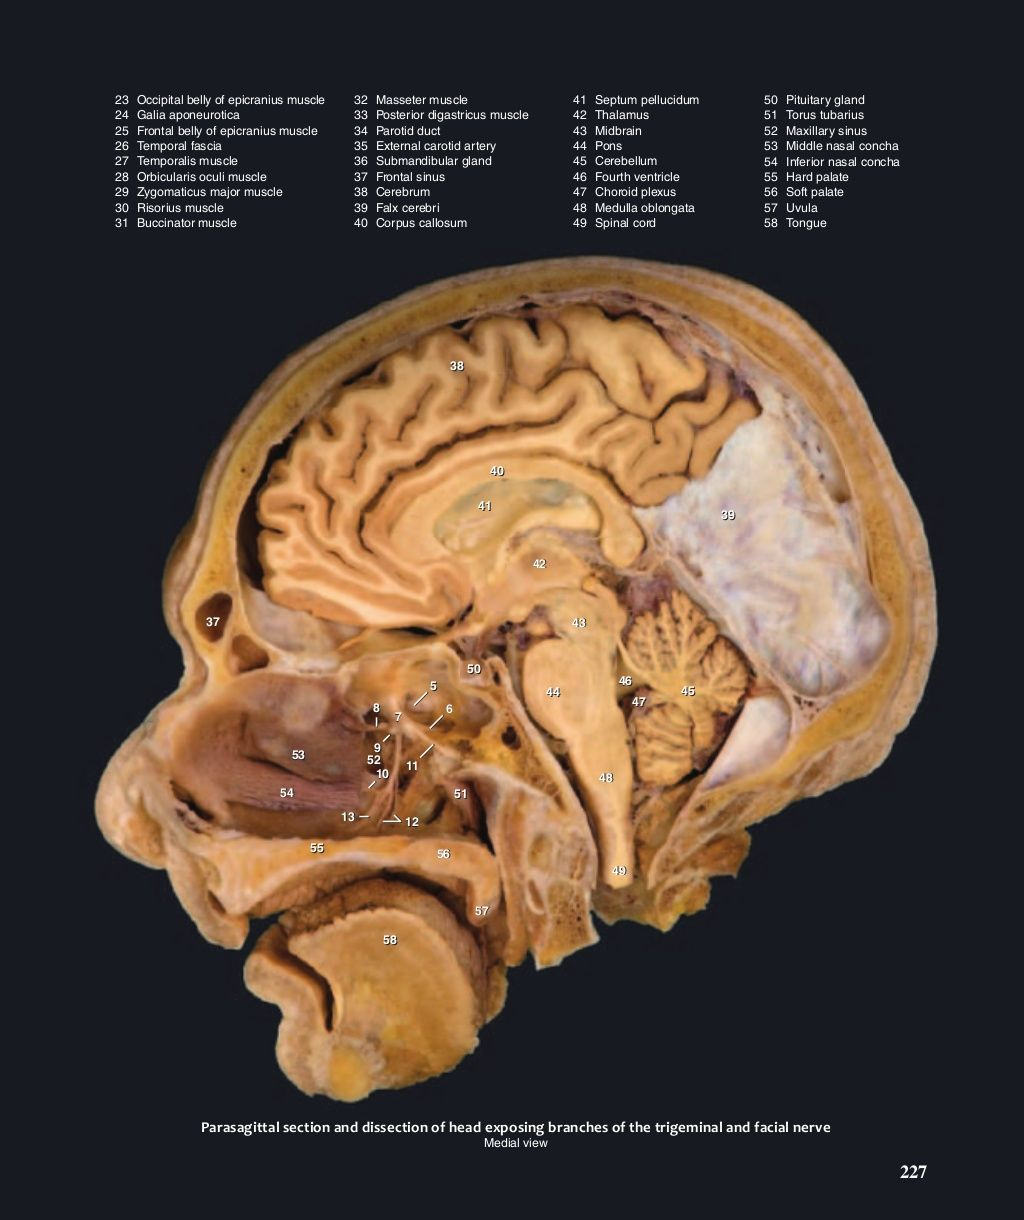 Atlas of human anatomy mark nielsen | Cranial Nerves | Pinterest ...